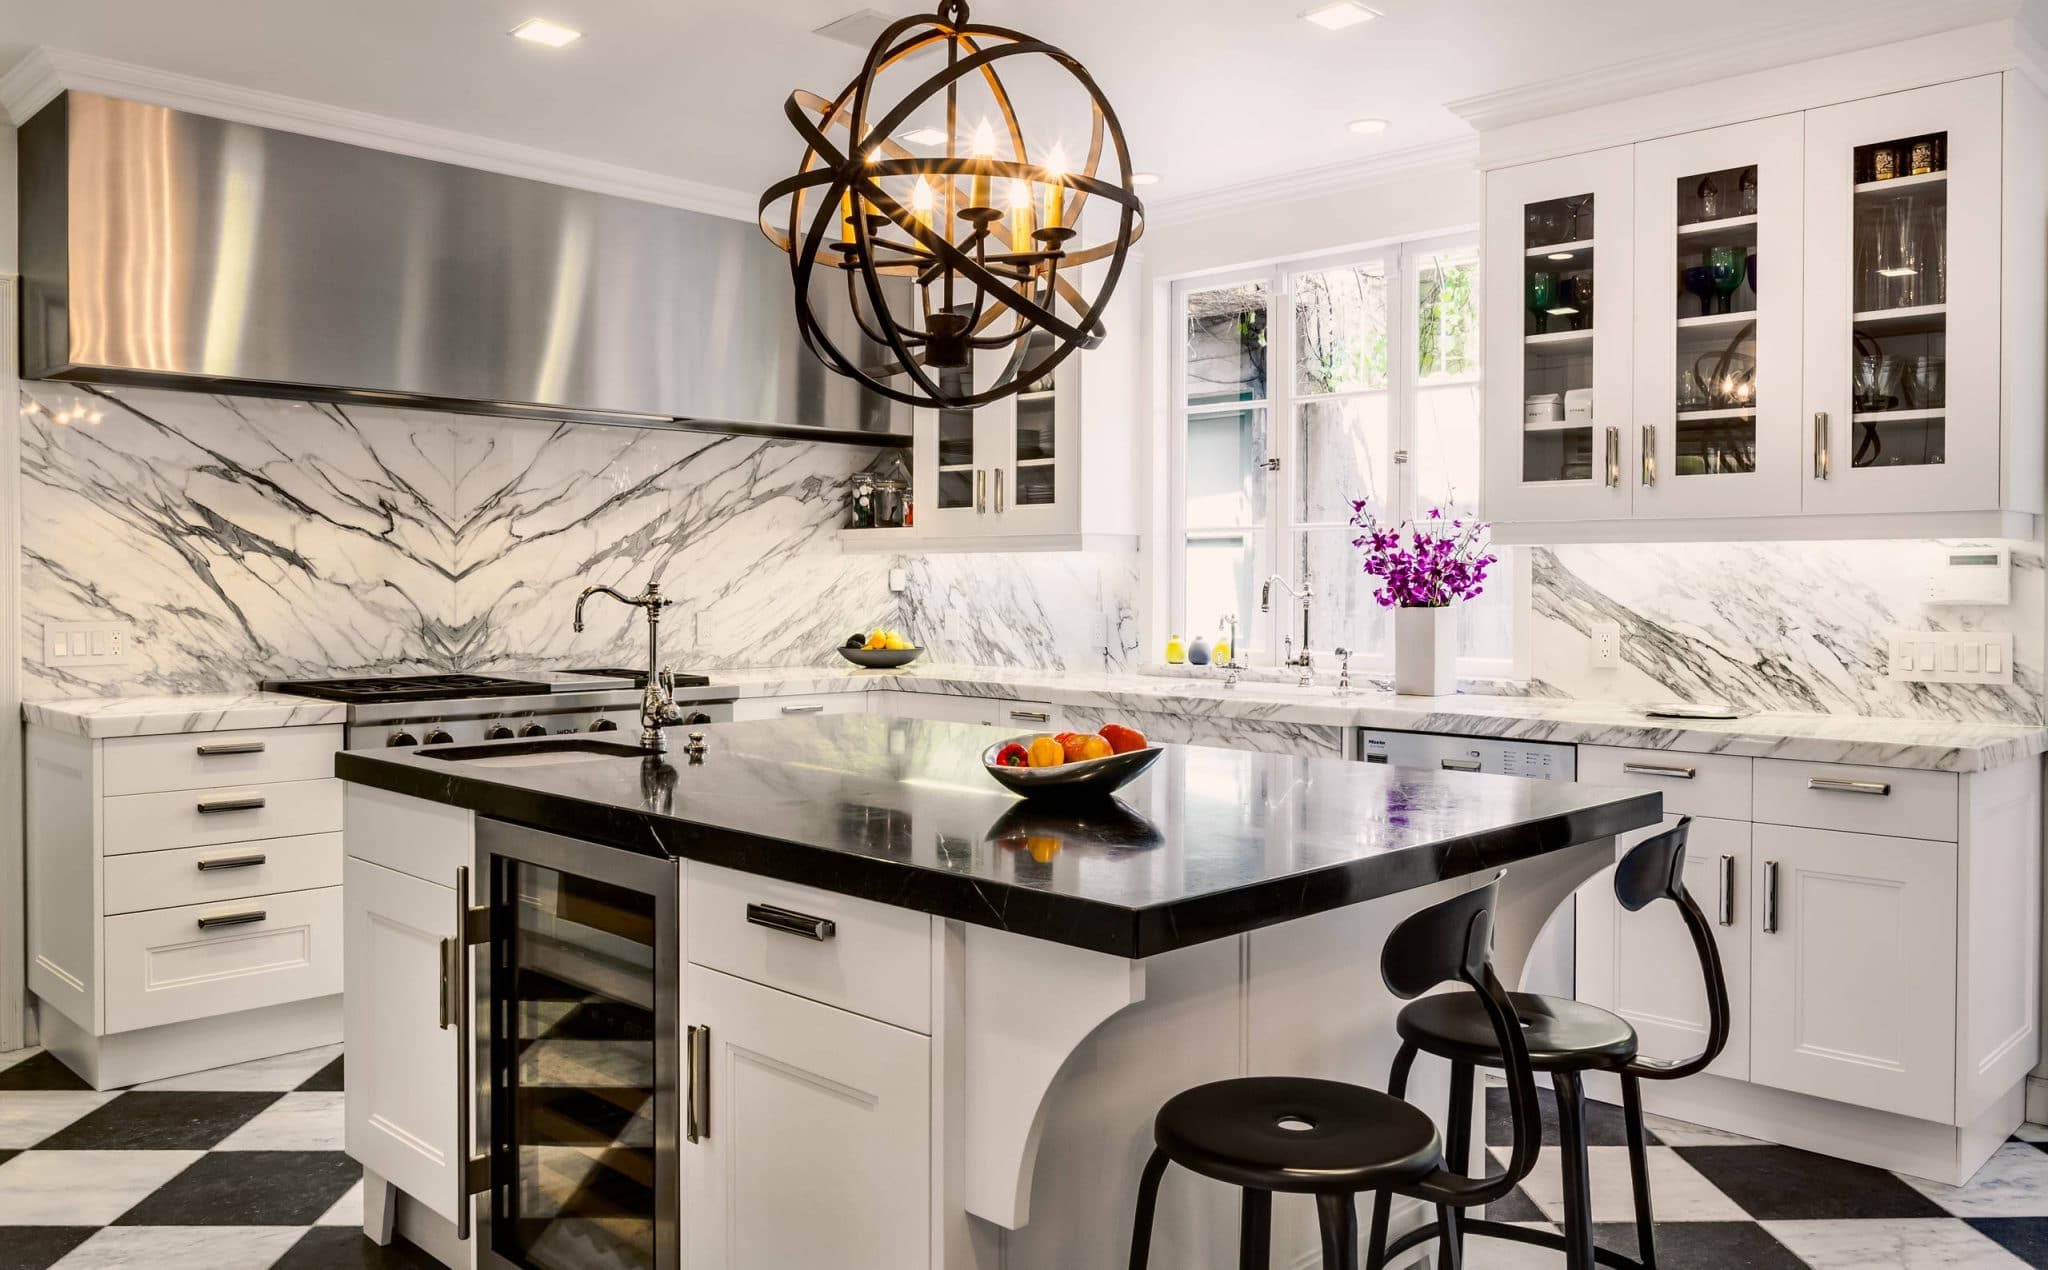 A Countertops Counterpart Kitchen Cabinets Best Online Cabinets,How To Organize Your Bathroom Counter